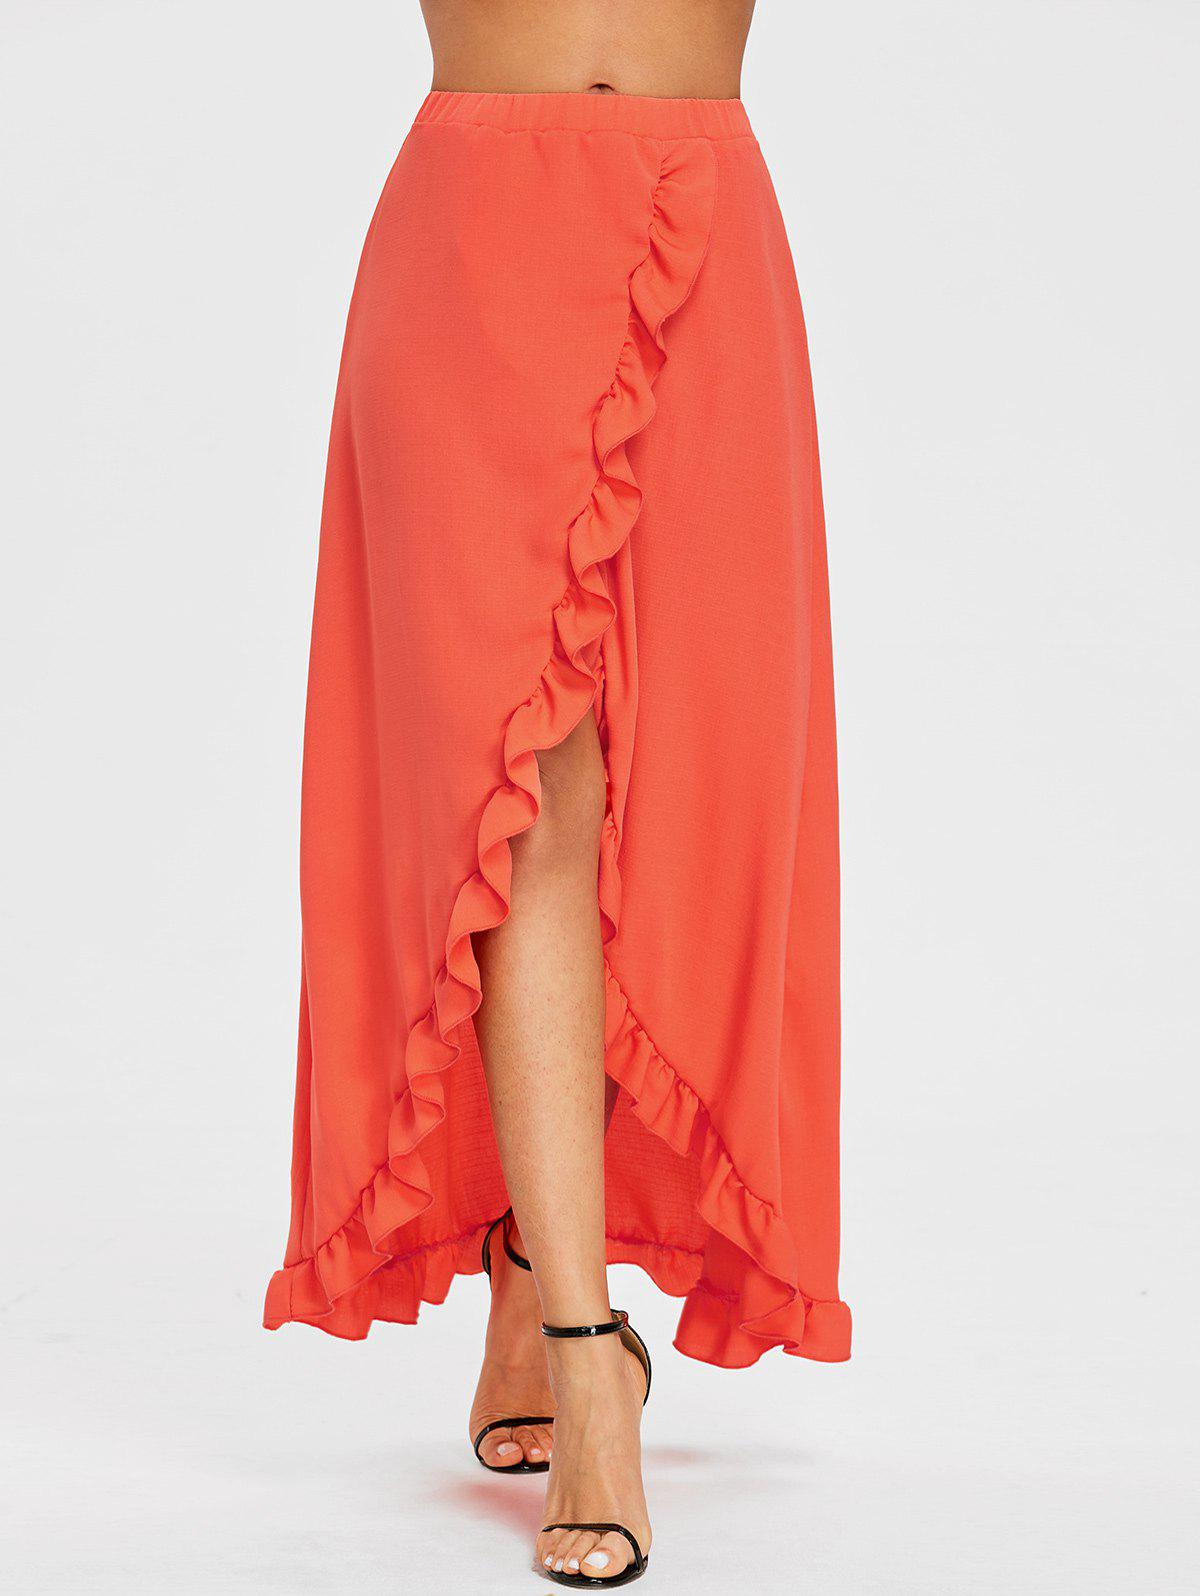 Trendy Ruffle Floor Length Tulip Skirt